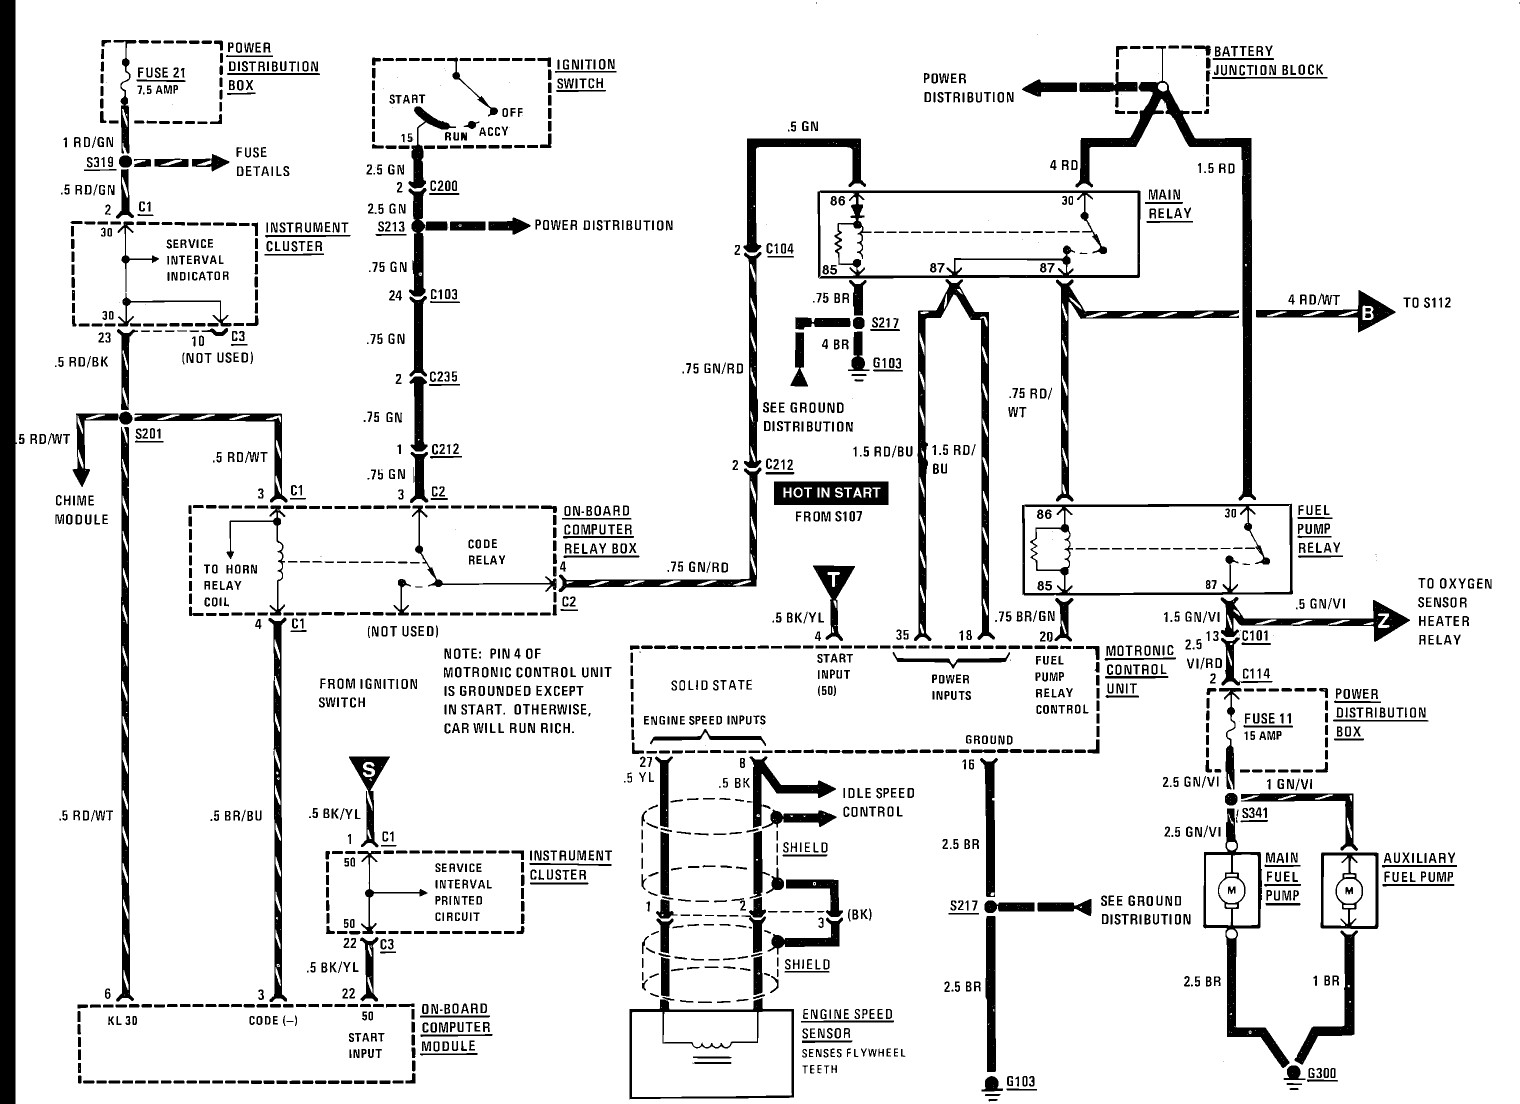 hight resolution of bmw 740il wiring diagram wiring diagram portal bmw schematic diagram 1998 bmw 740il wiring schematic schema